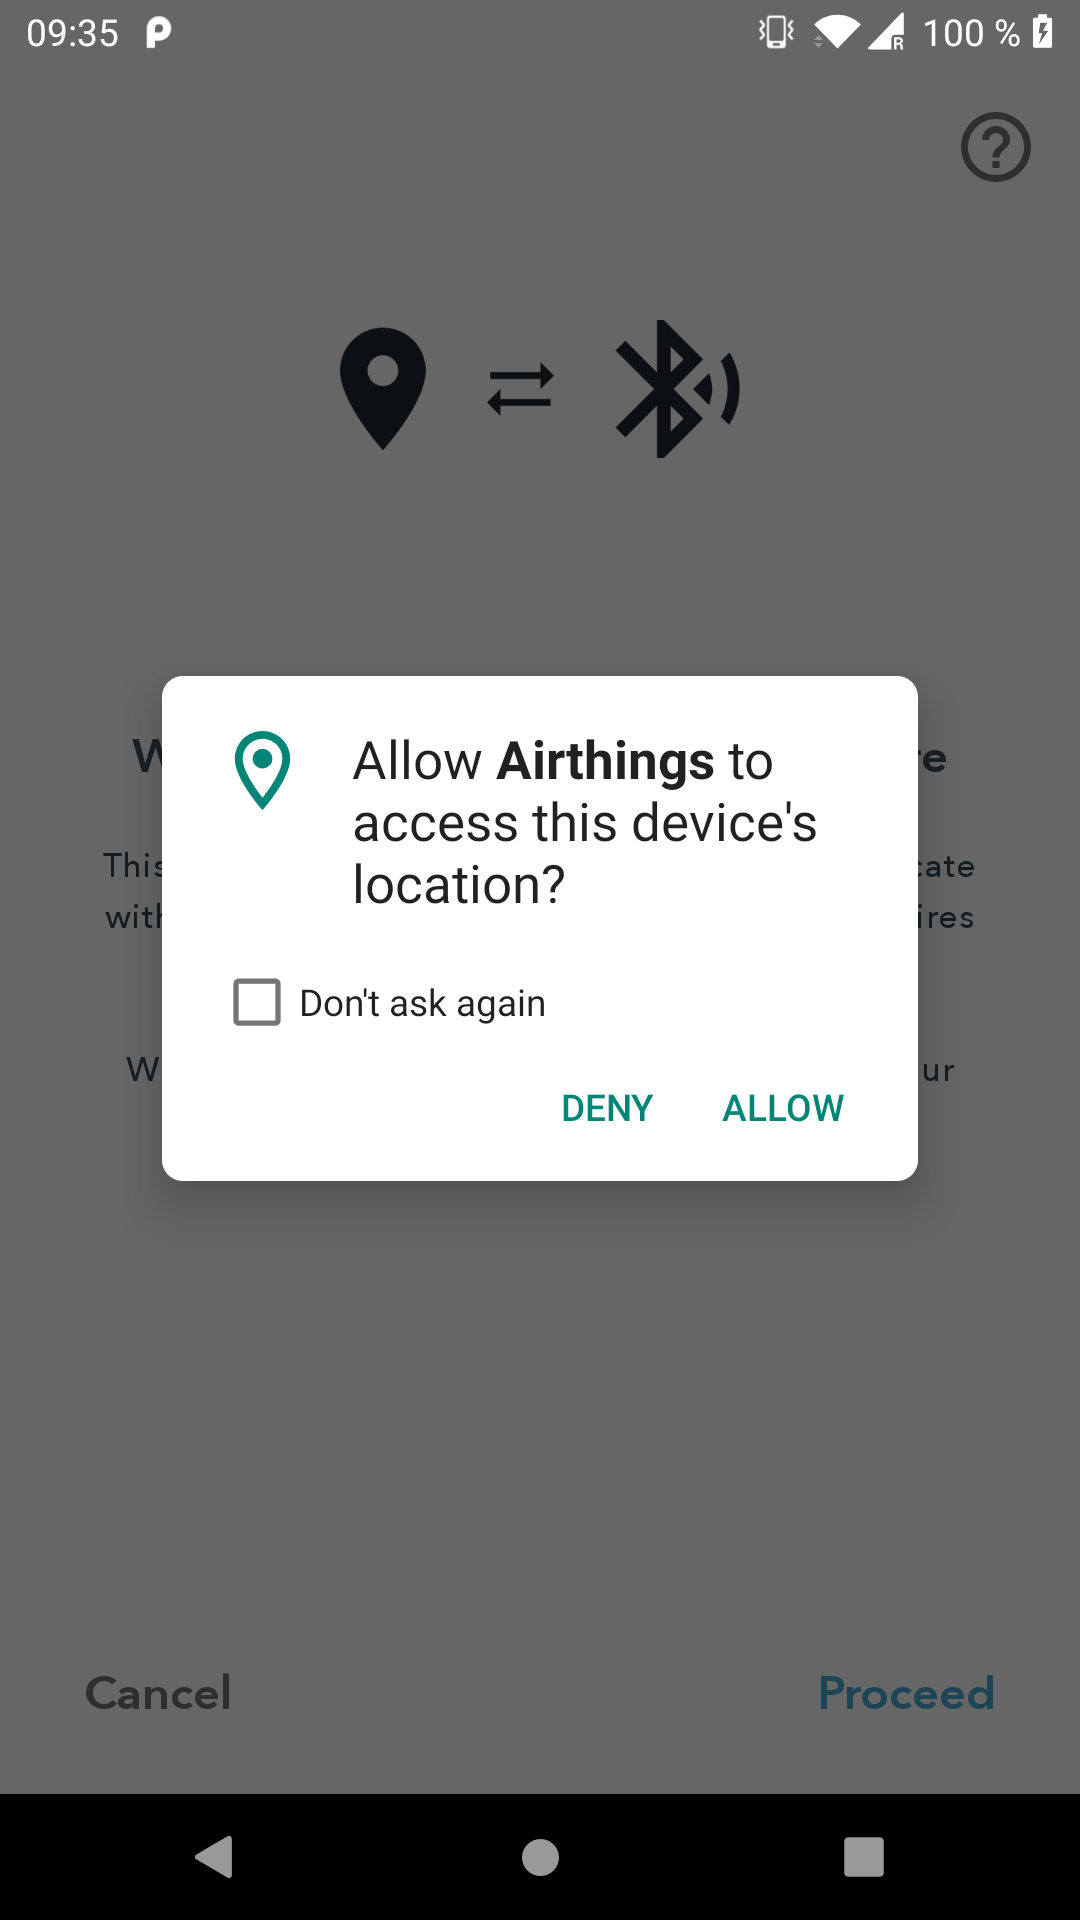 System location popup: Allow Airthings to access this device's location